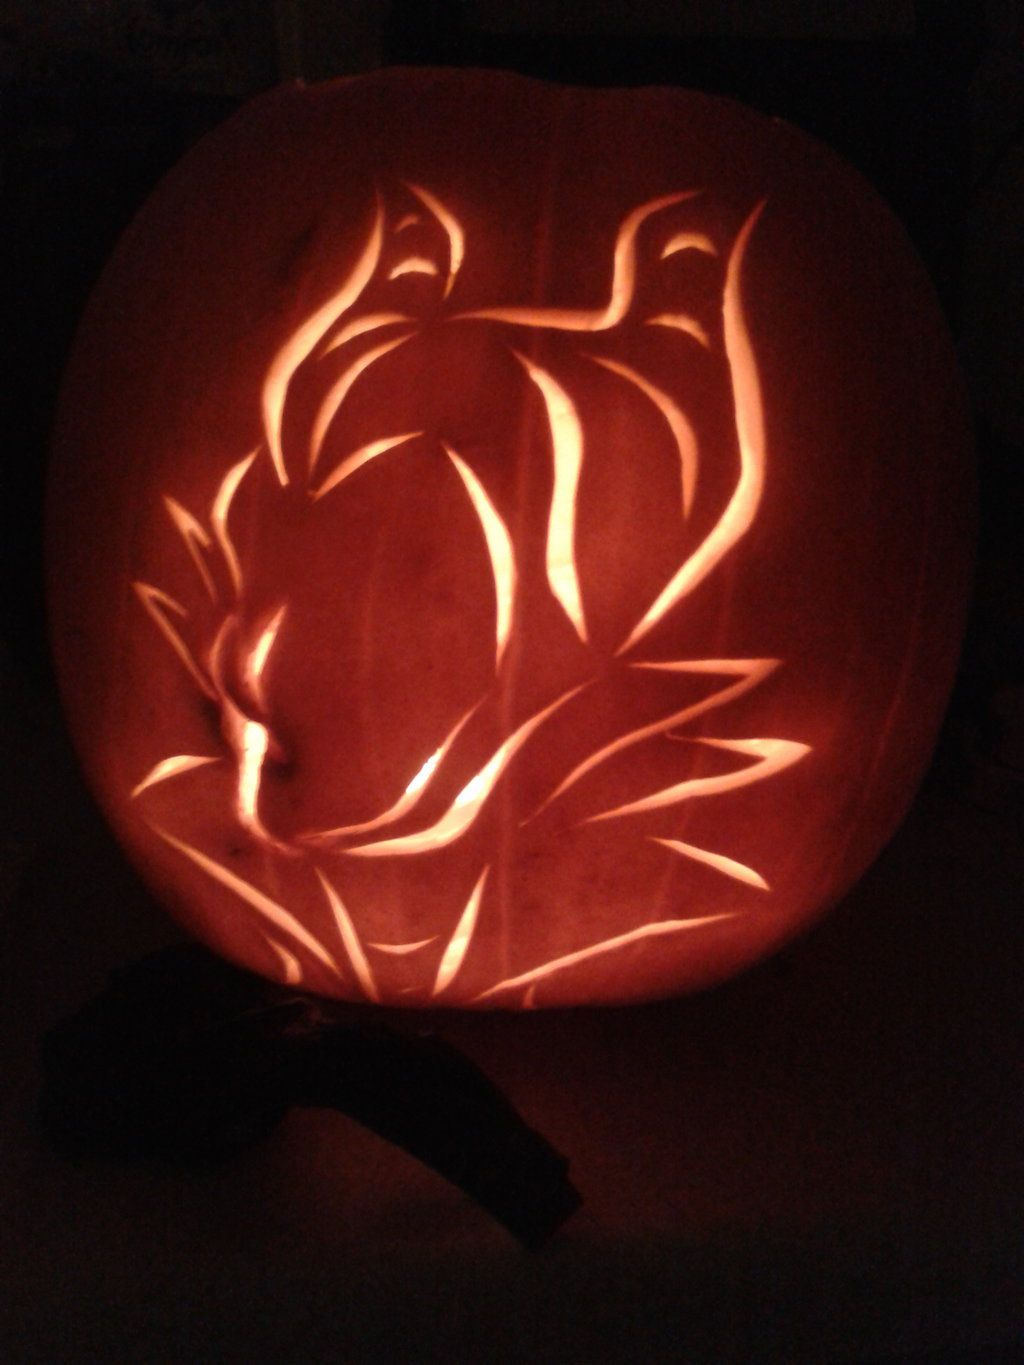 My new design as pumpkin carving this year gotta